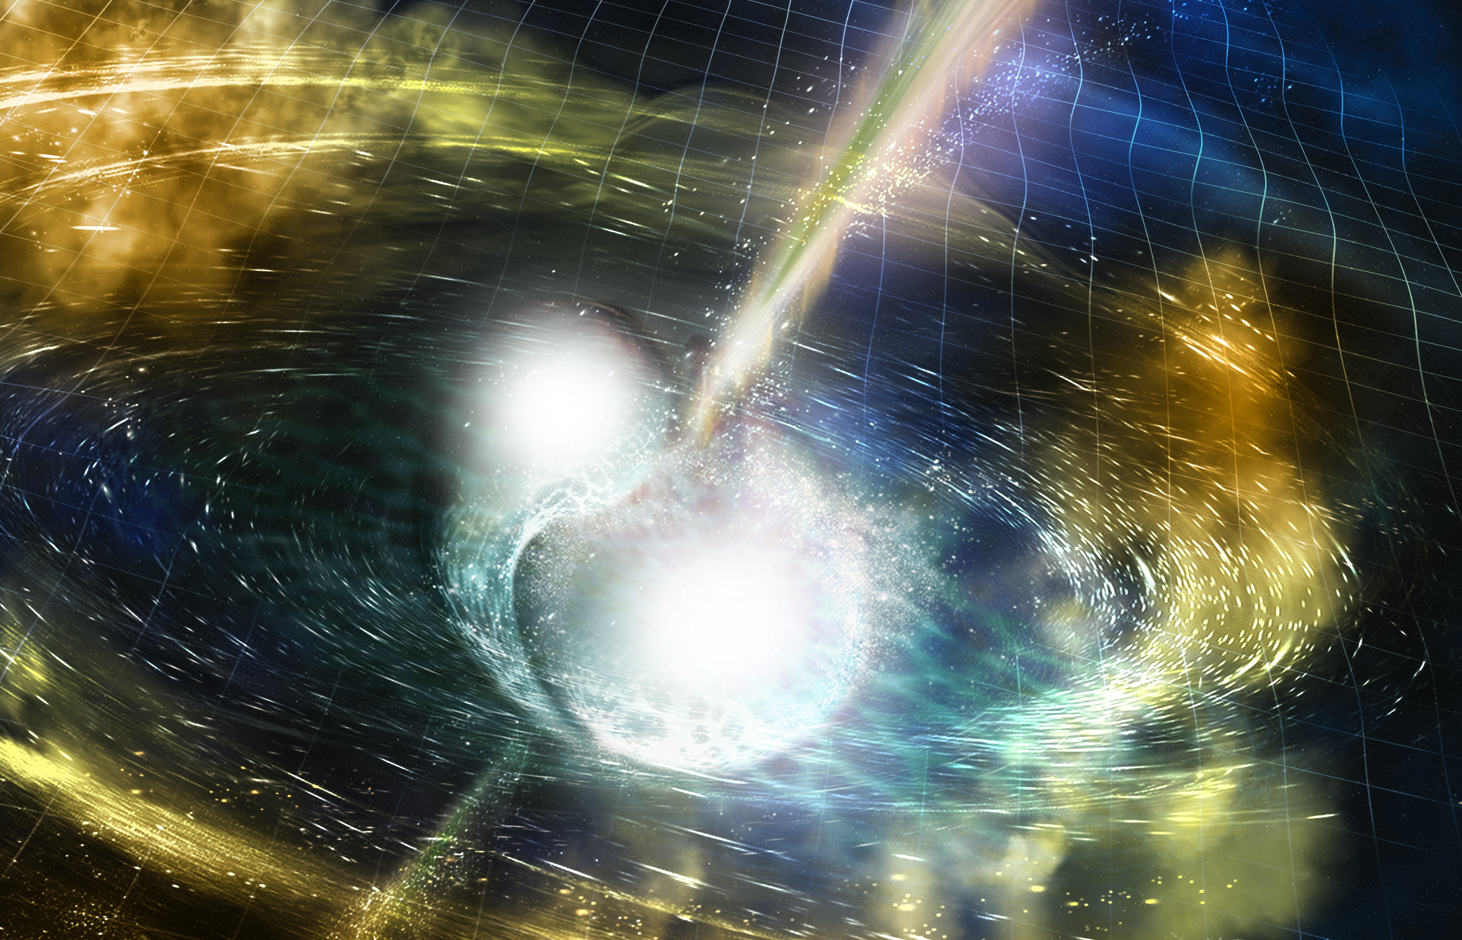 An artist's illustration of two merging neutron stars. The rippling space-time grid represents gravitational waves that travel out from the collision, while the narrow beams show the bursts of gamma rays that are shot out just seconds after the gravitational waves.